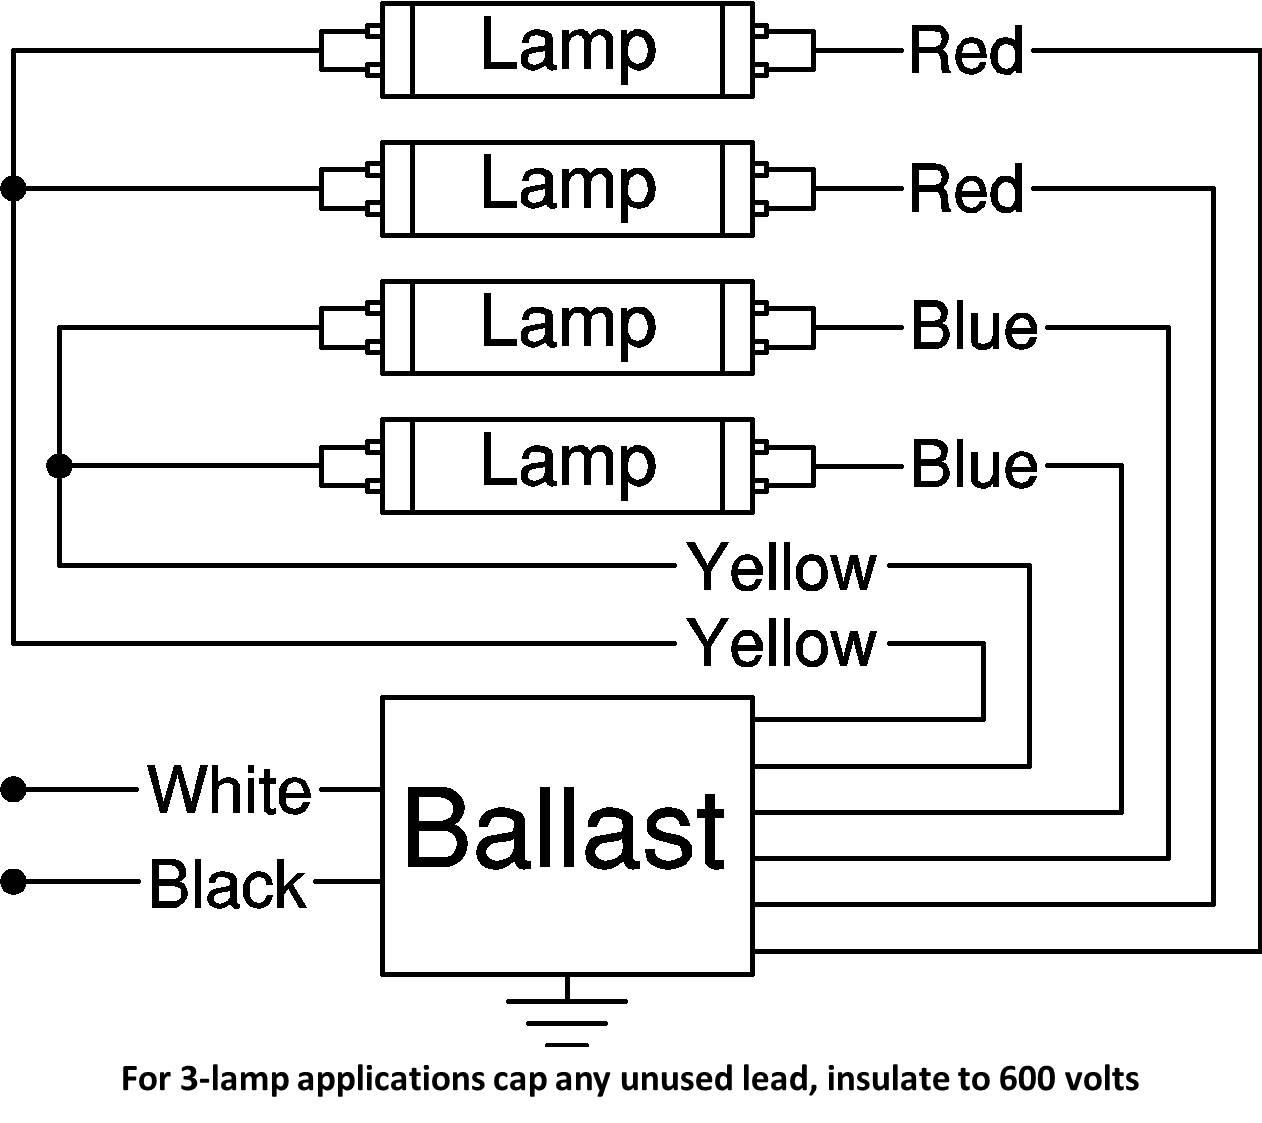 4 Light Ballast Wiring Diagram Control 2 With Lamps Robertson Worldwide Isl432t8hemv Ah 3p20160 120 277 Vac 50 Lamp